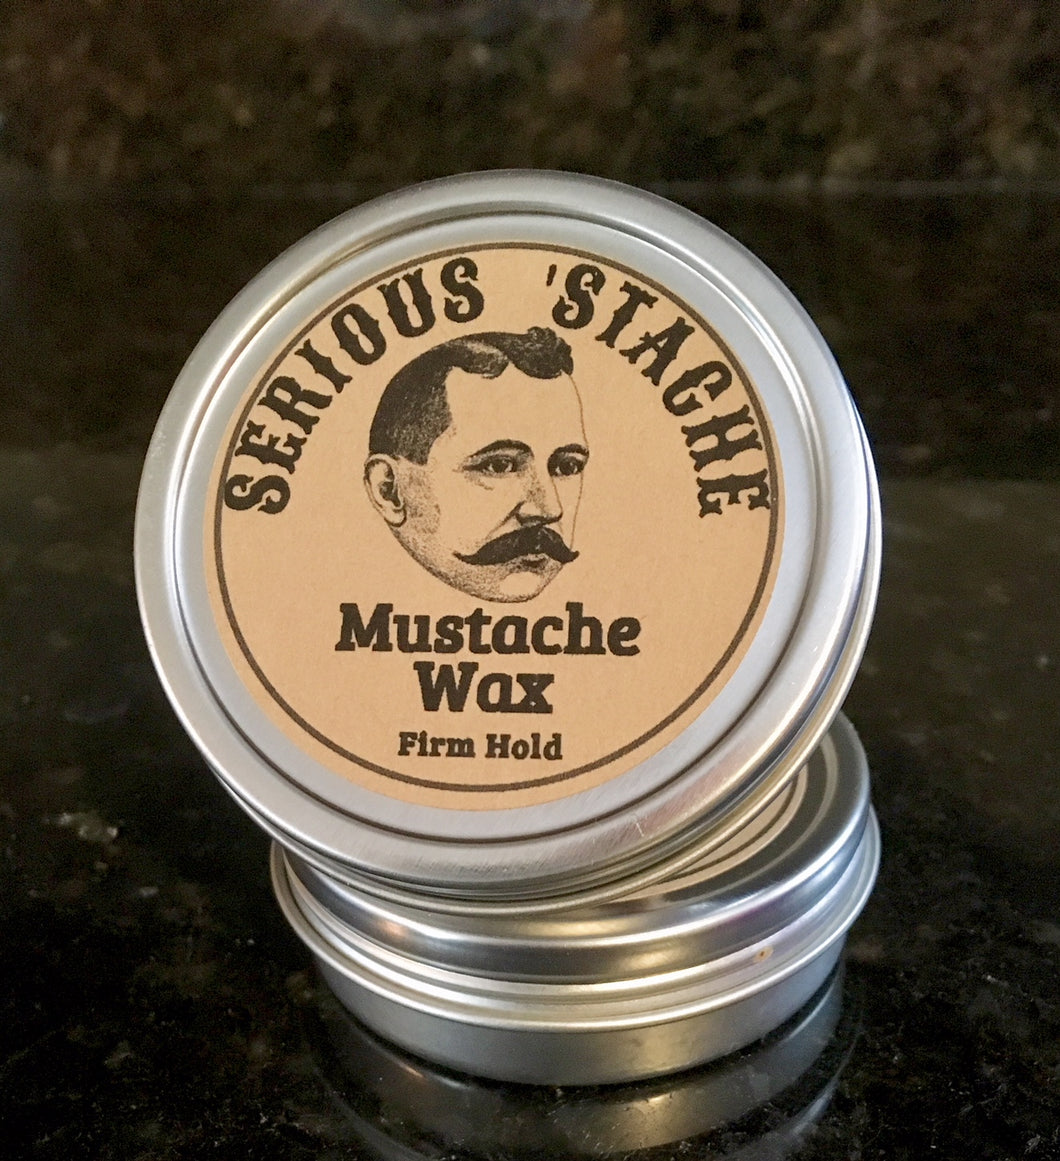 natural mustache wax firm hold 1.5 oz. men's grooming